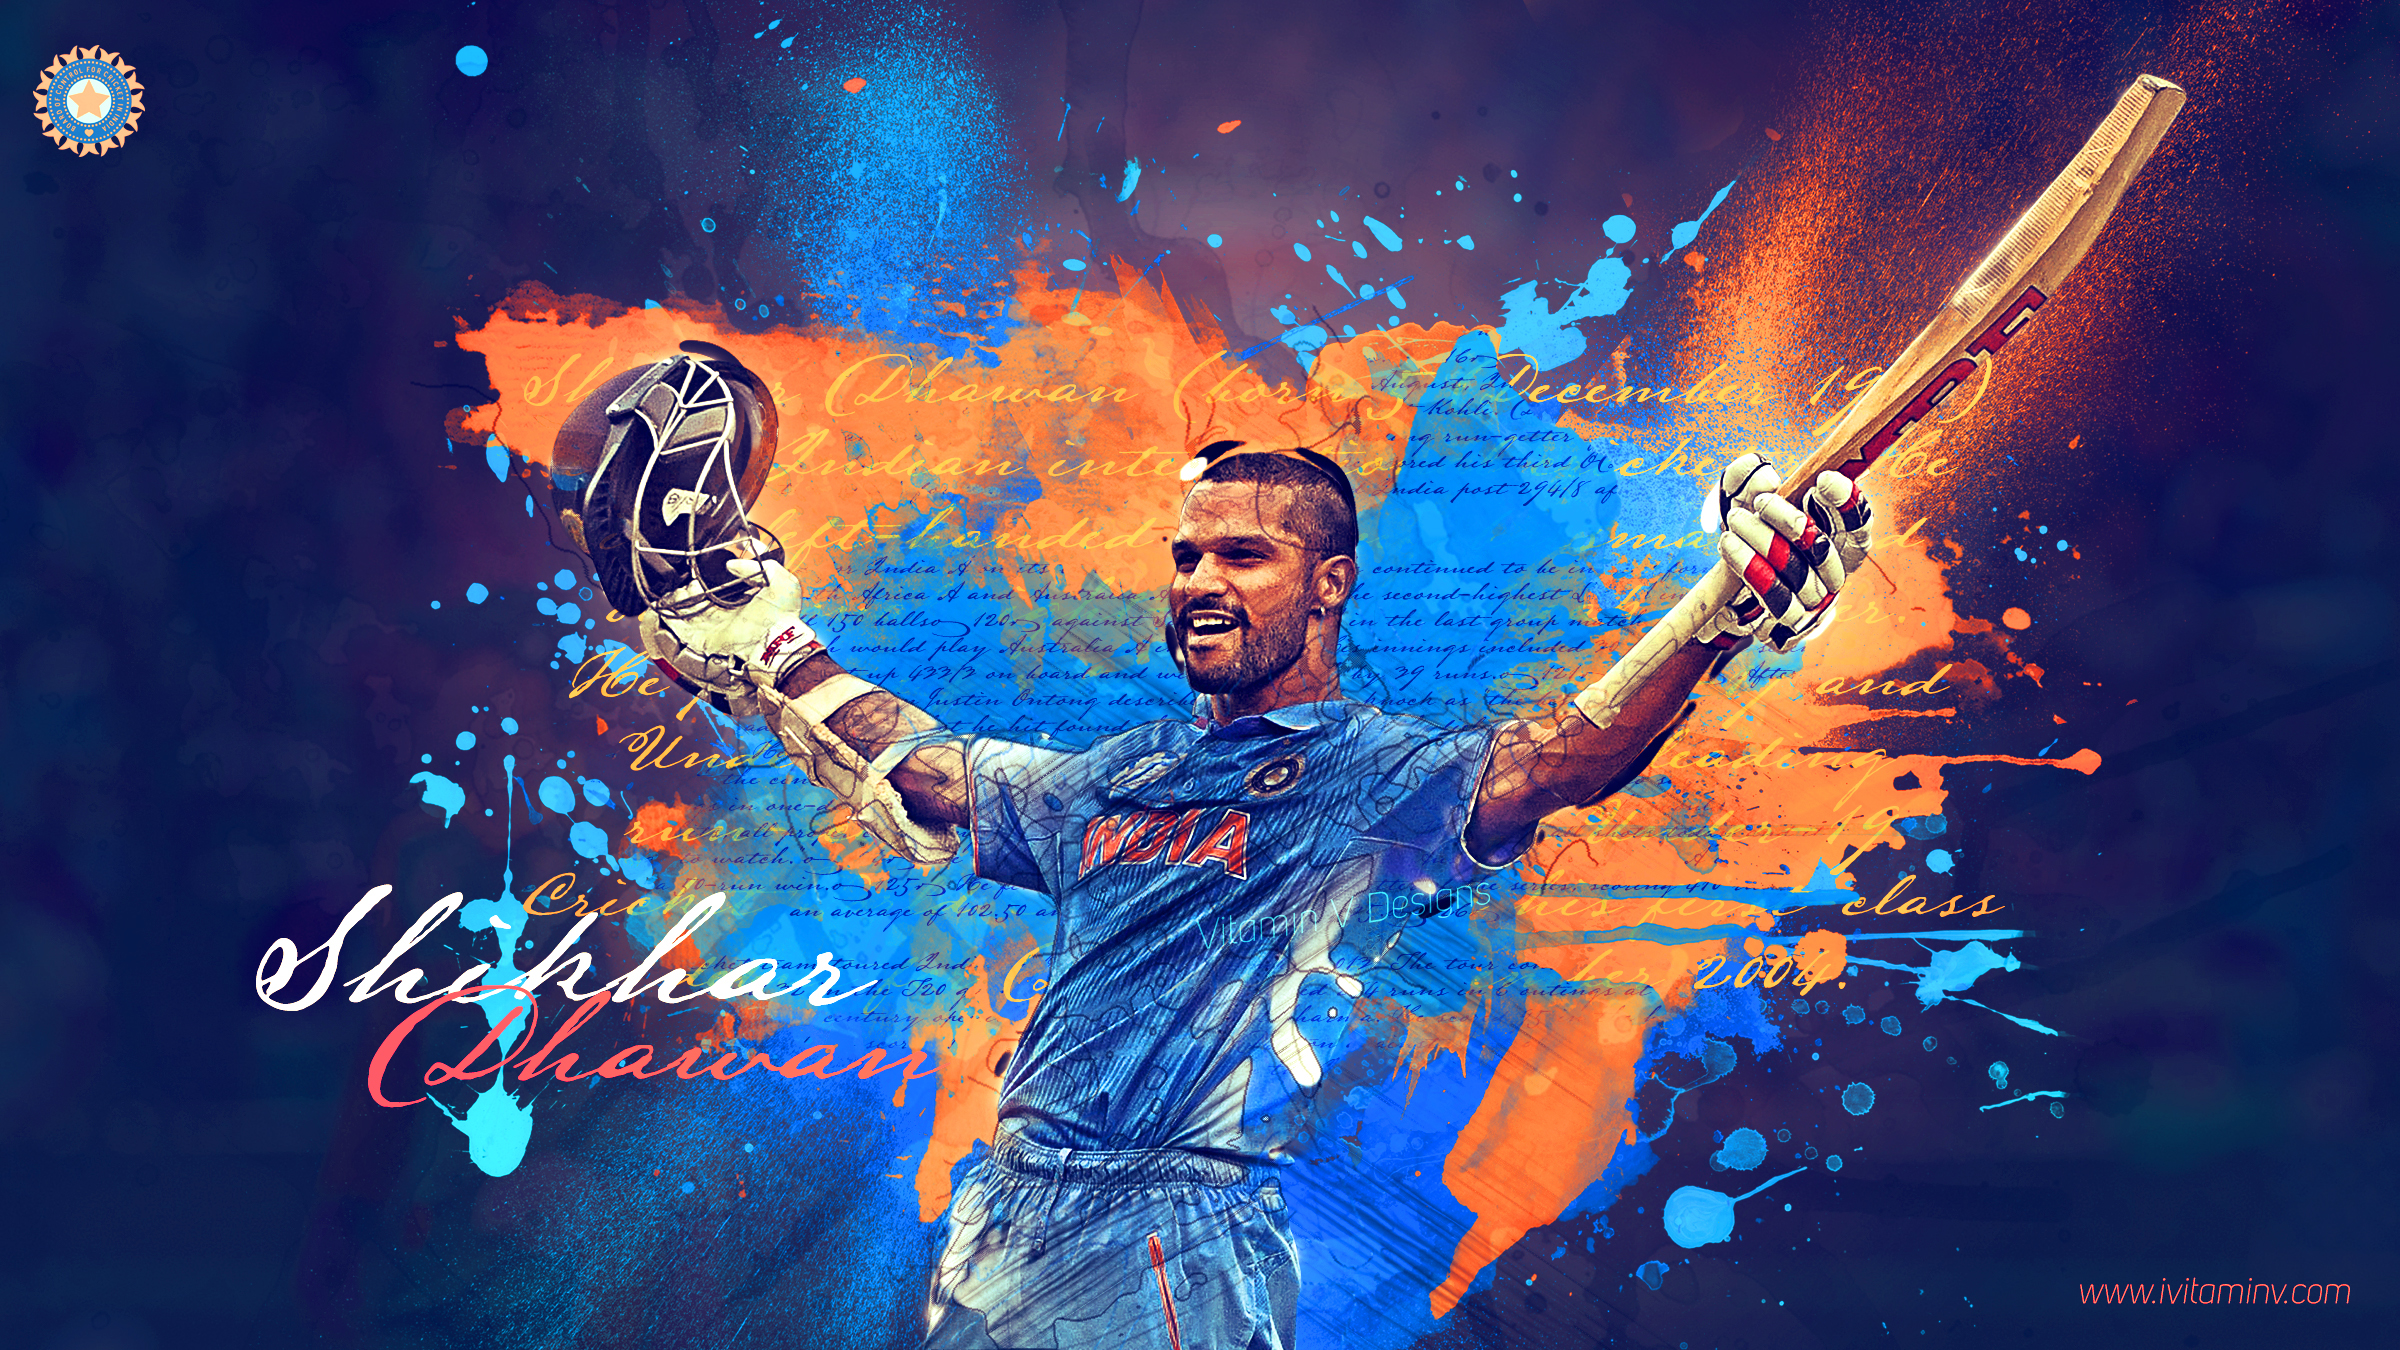 Vick Singh Cricketology Indian Cricket Team Wallpapers